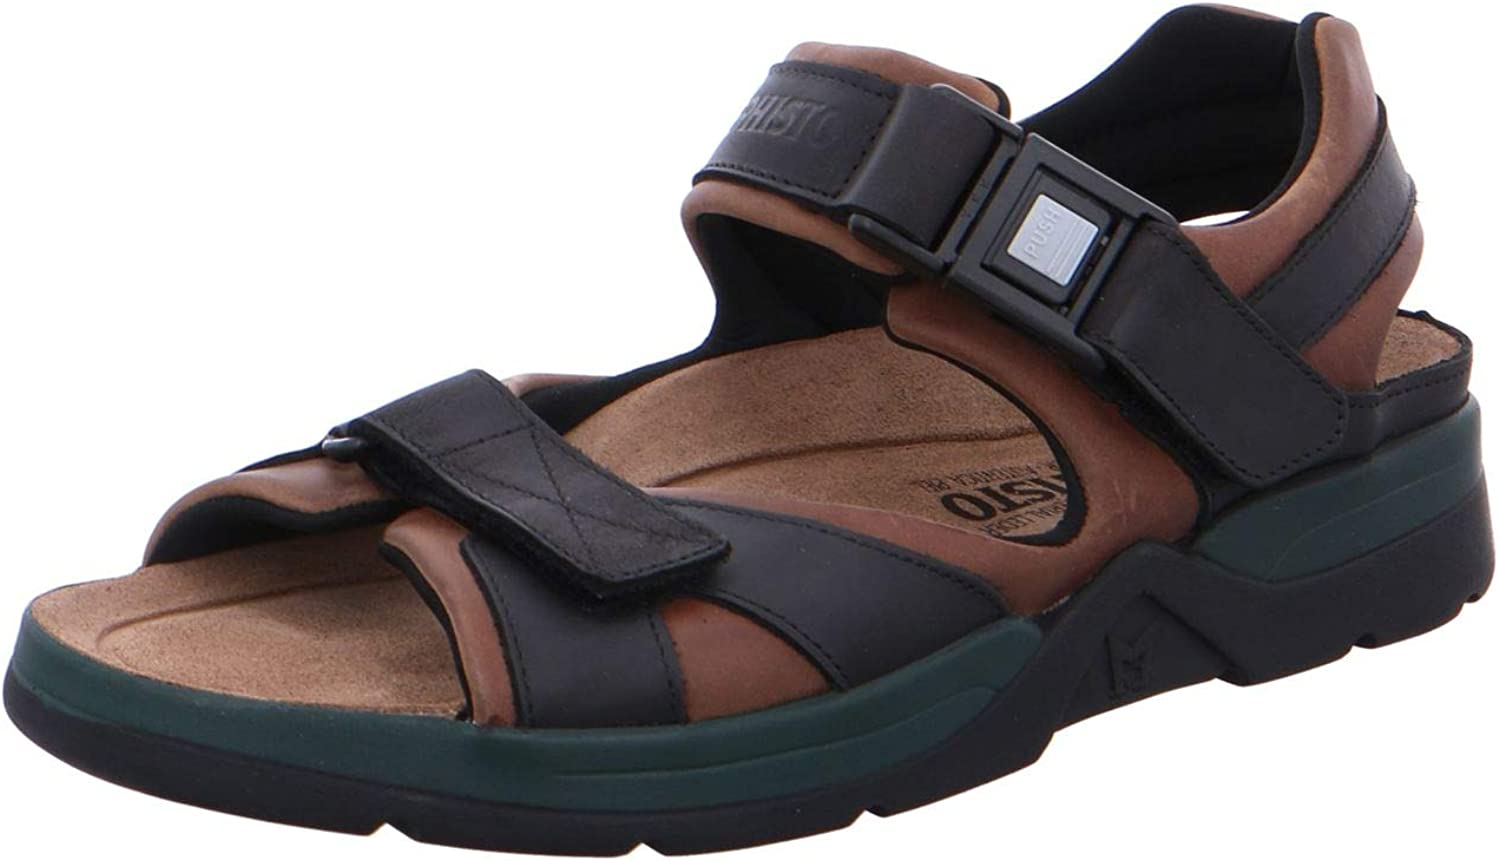 Mephisto Men's Shark Sandals Dark Brown/Black Waxy Leather 9 M US